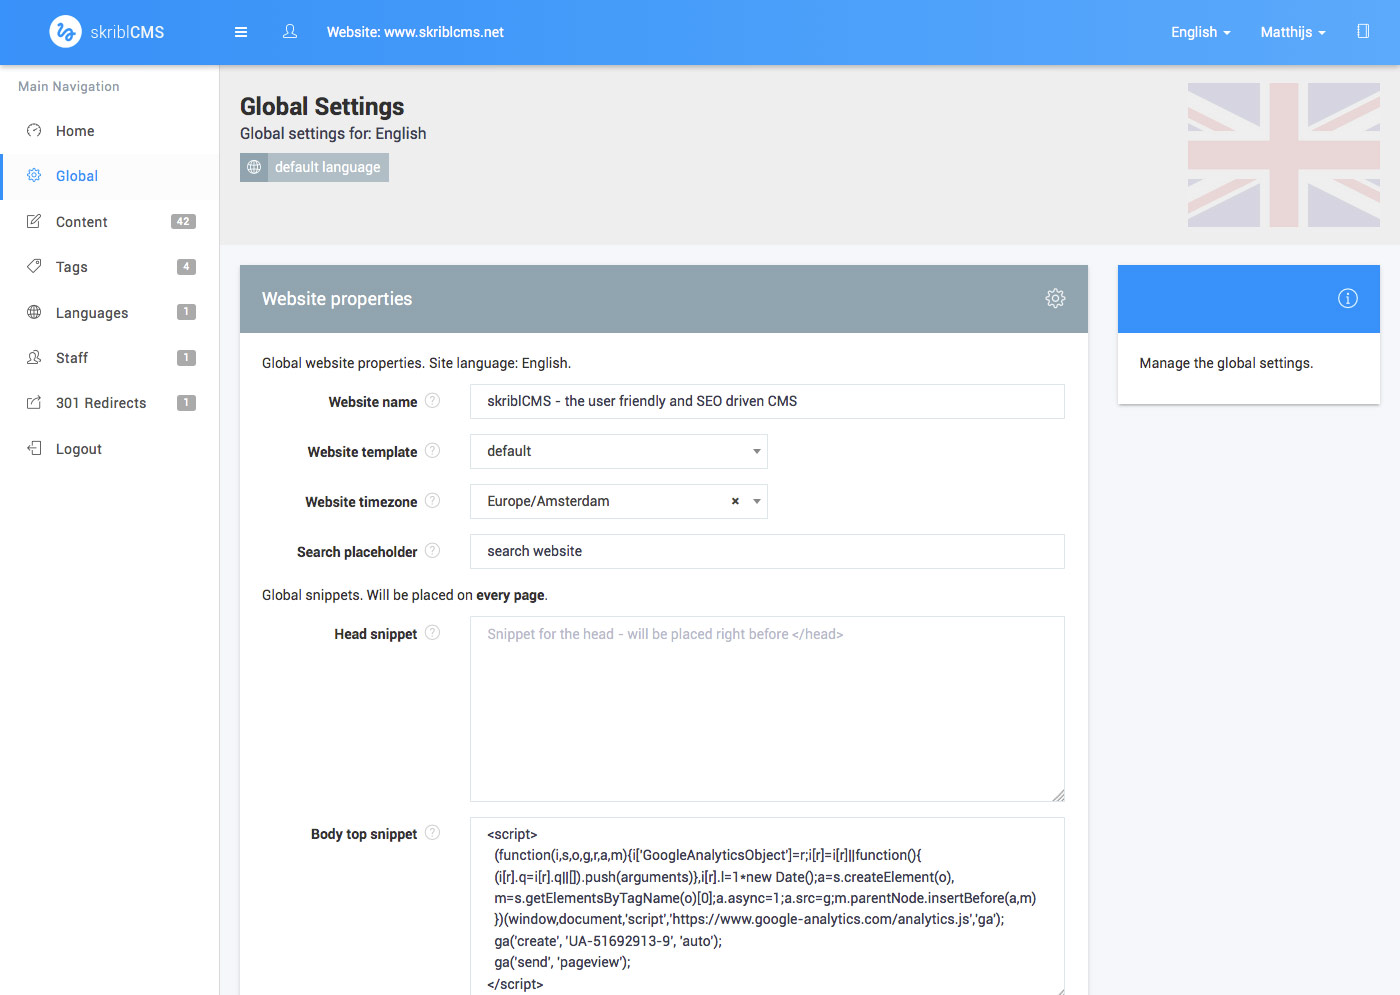 skriblCMS - global settings - manage the global settings and code snippets for all pages